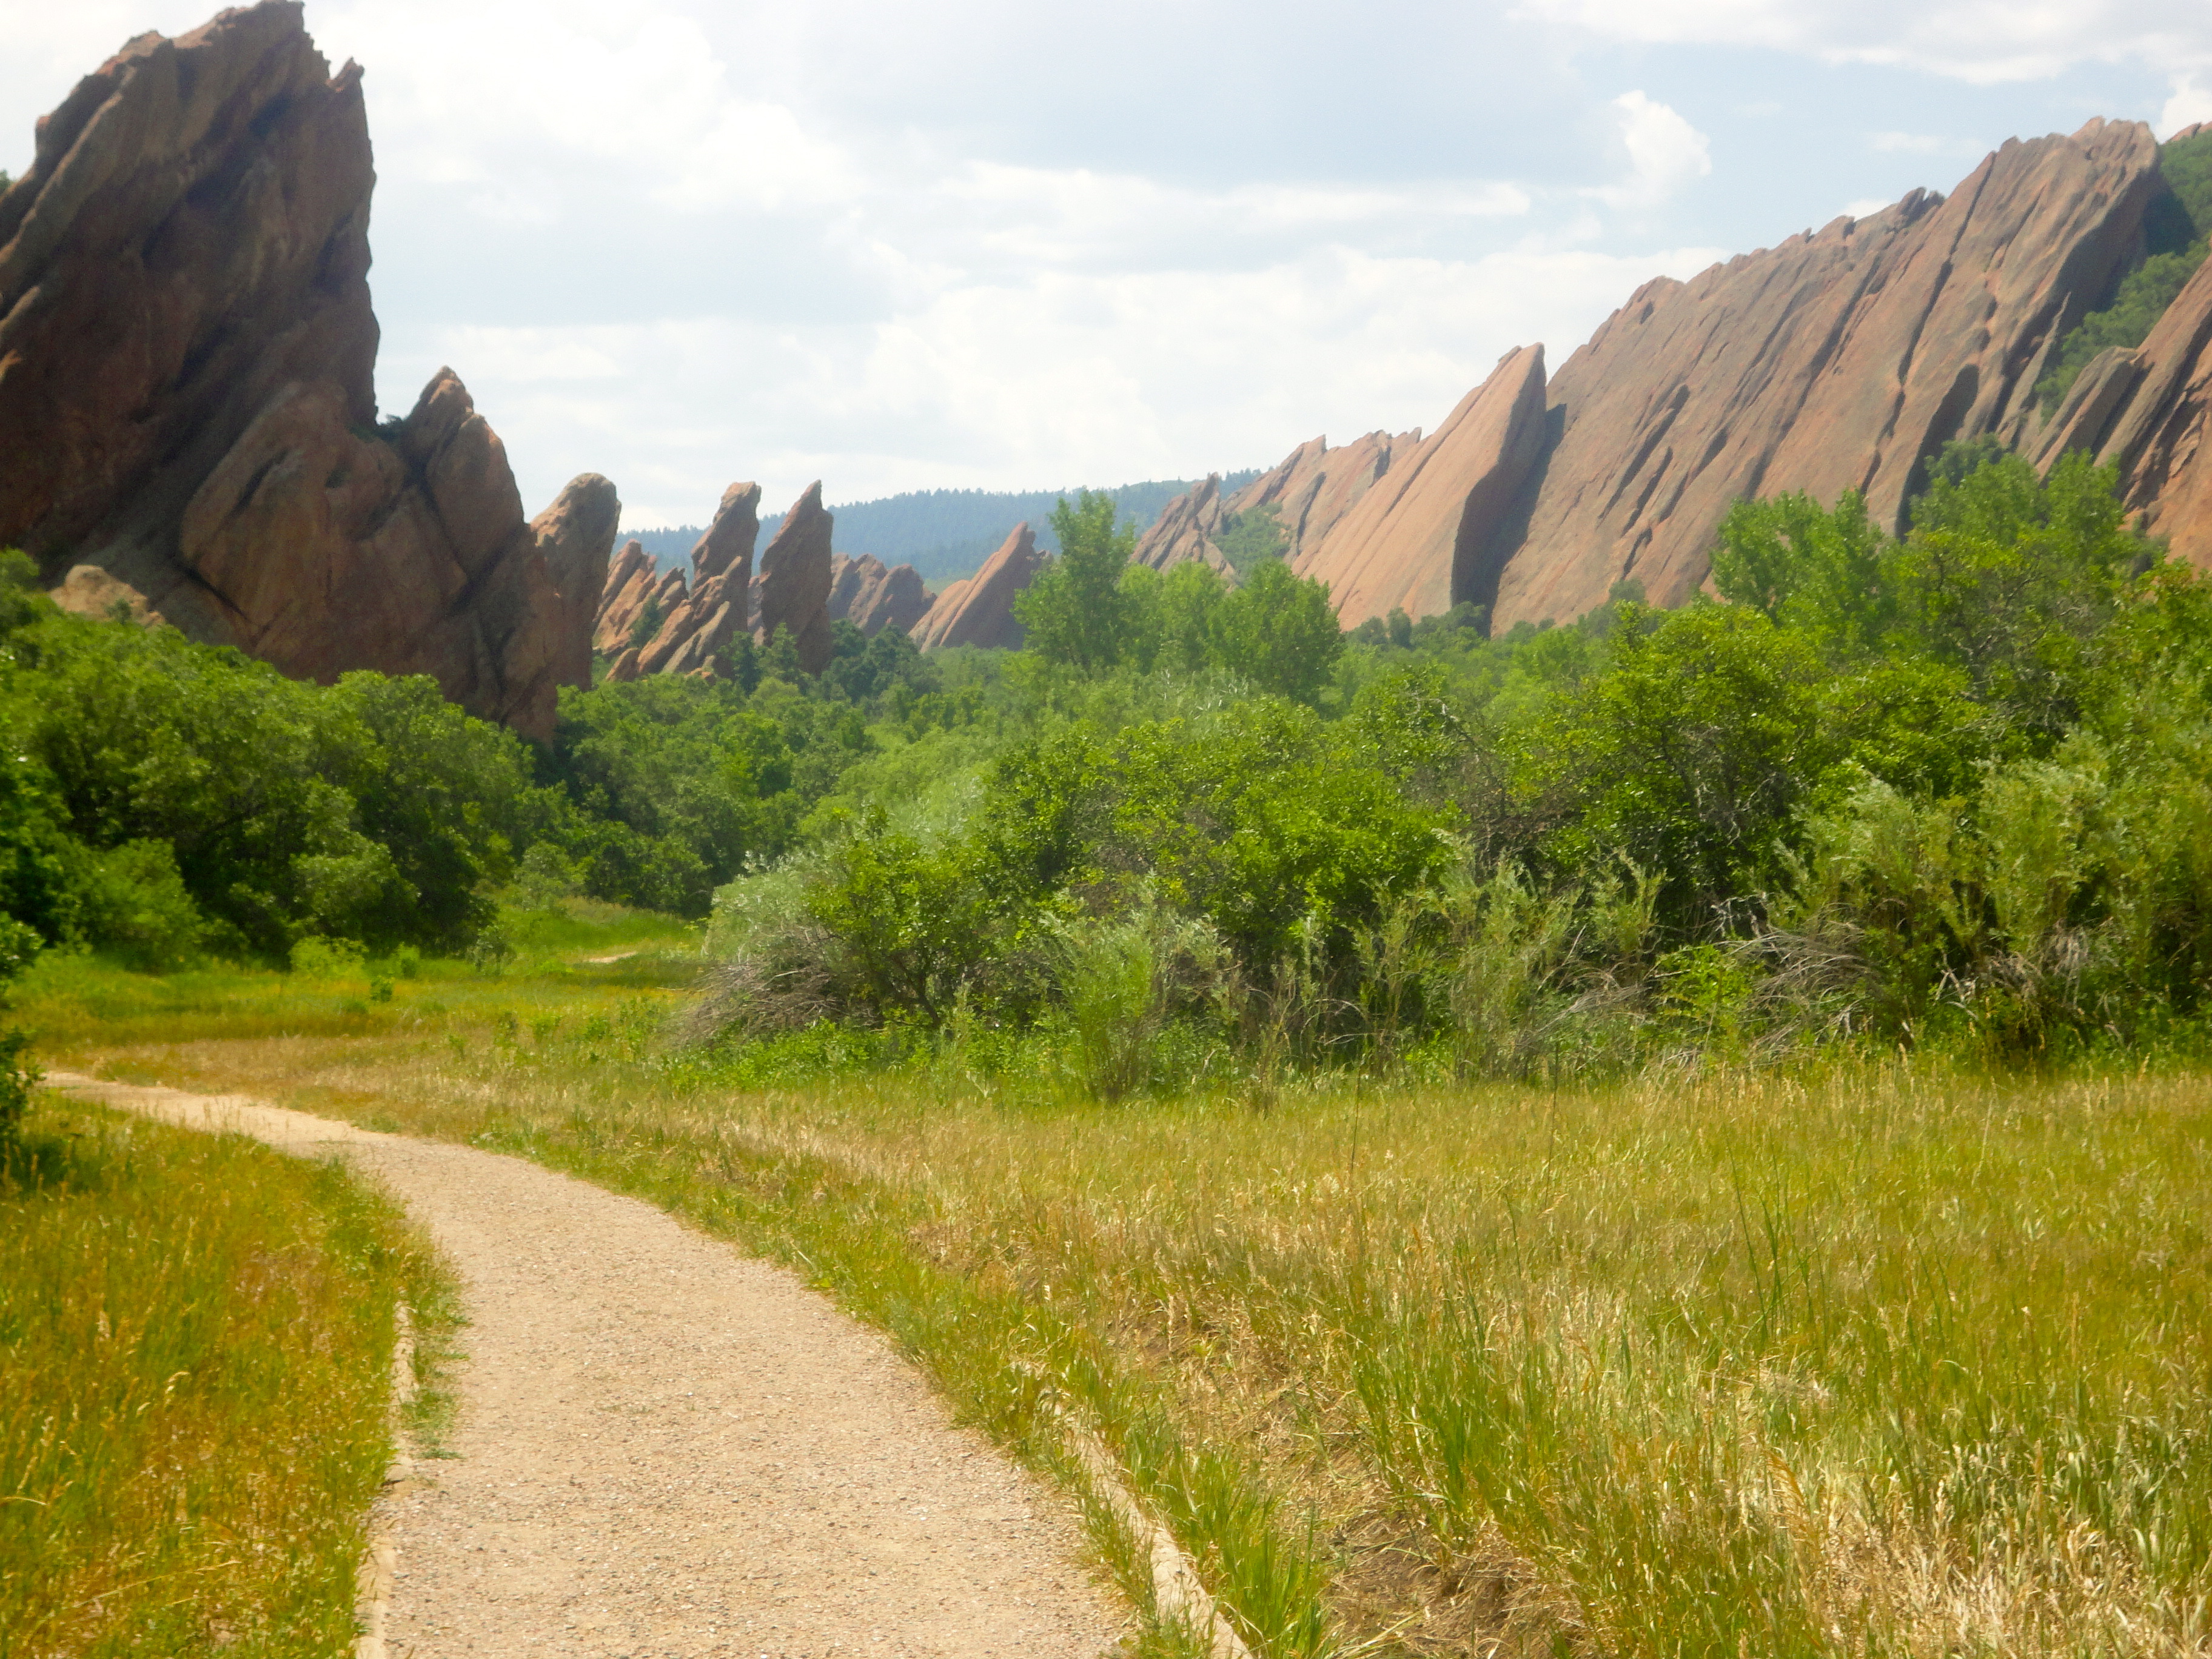 Towering red rock formations surround Roxborough State Park creating dramatic views in southwest Denver